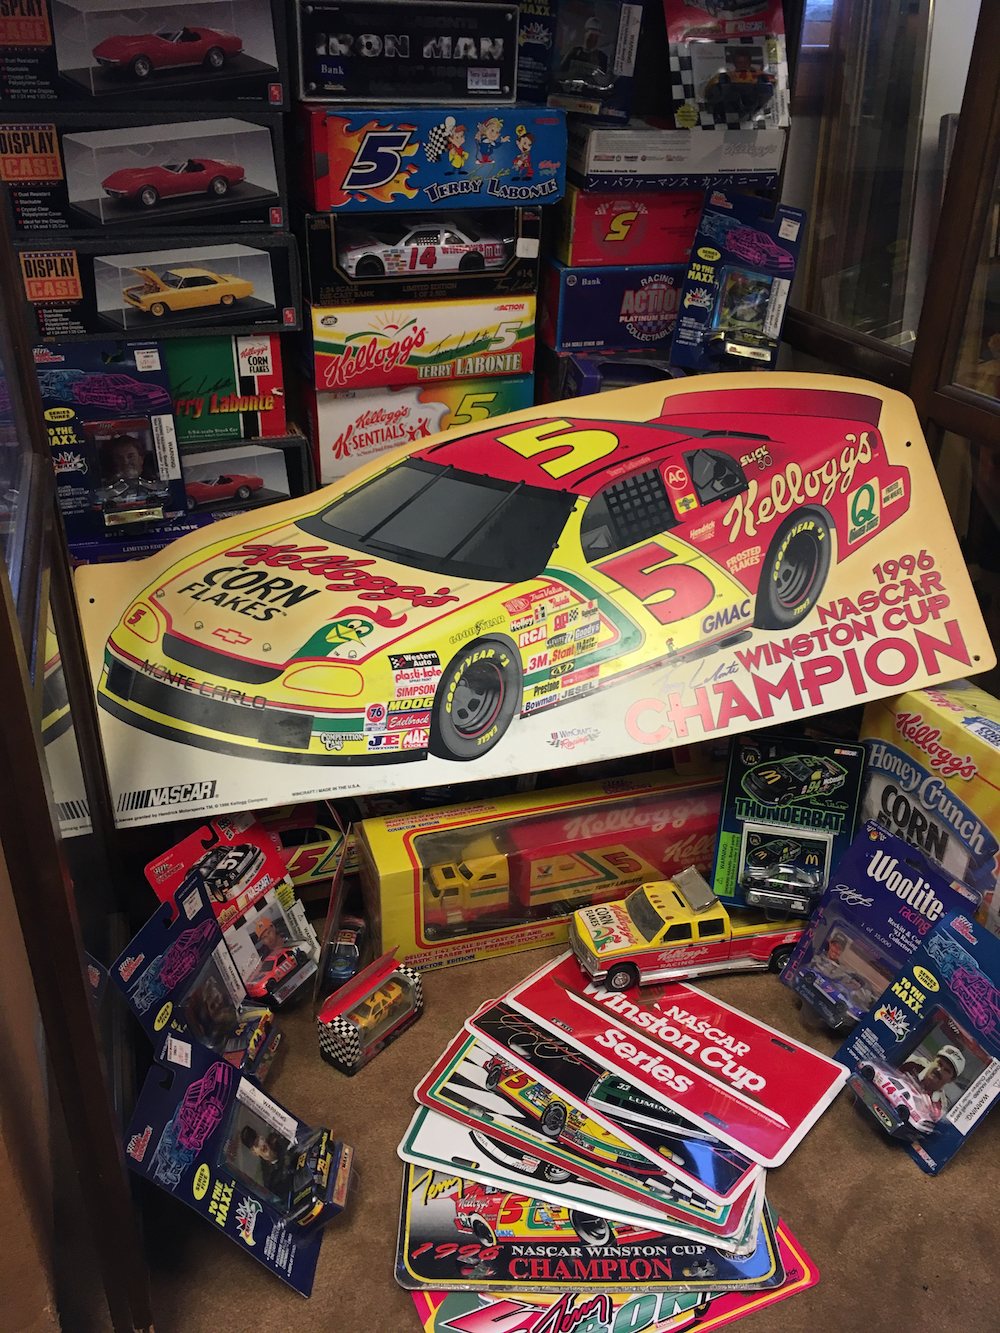 Terry LaBonte and Racing Collection